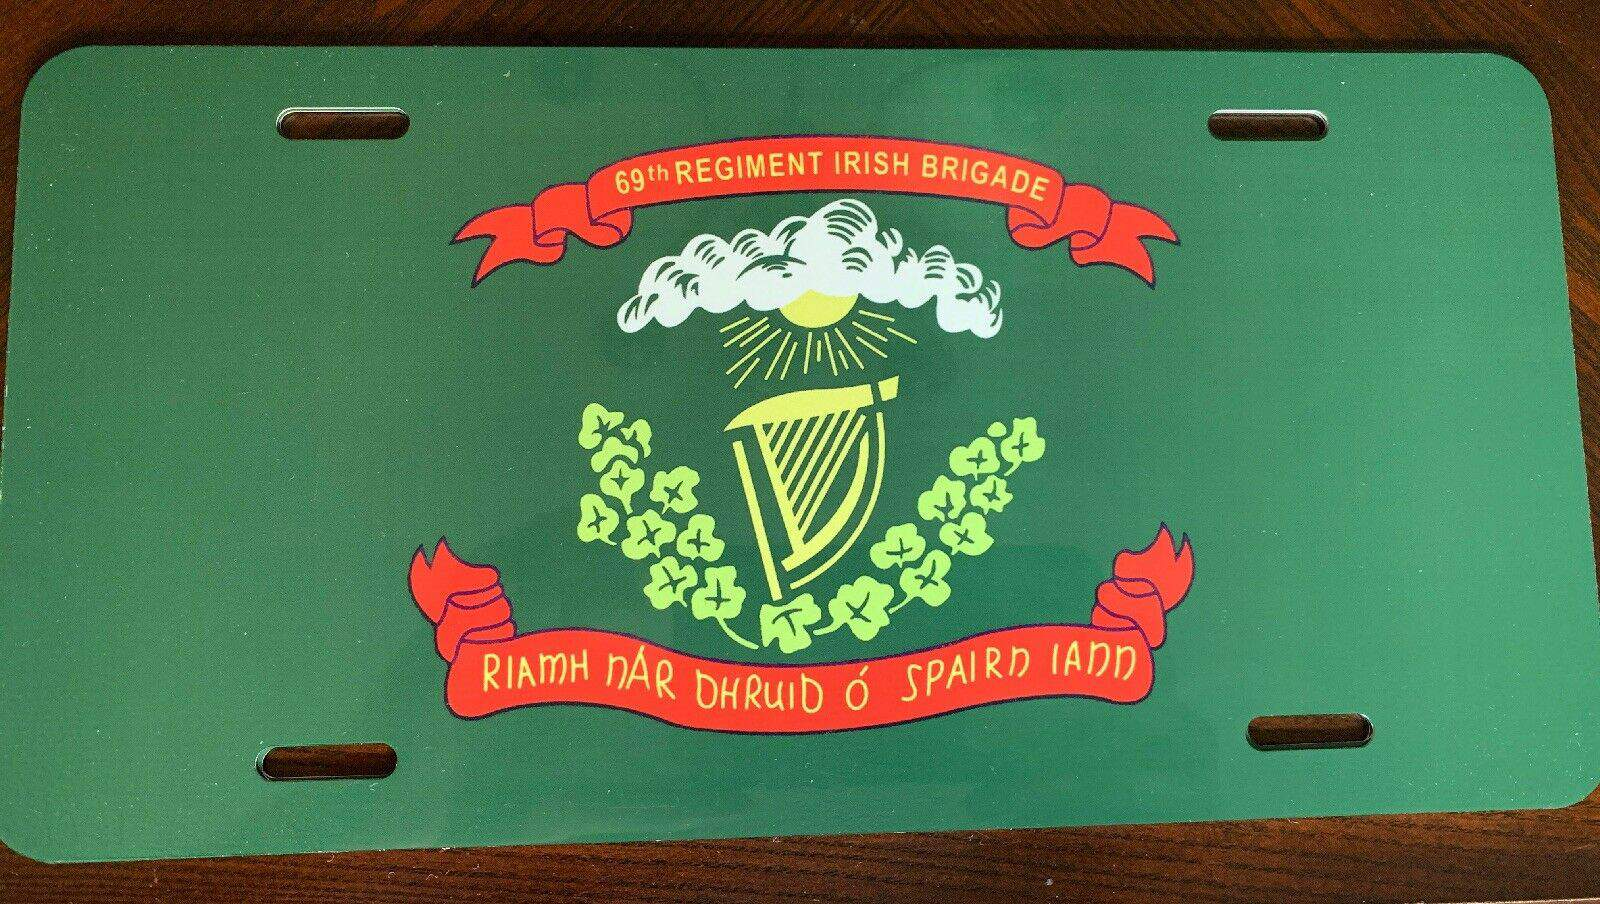 69th Regiment Irish Brigade License Plate